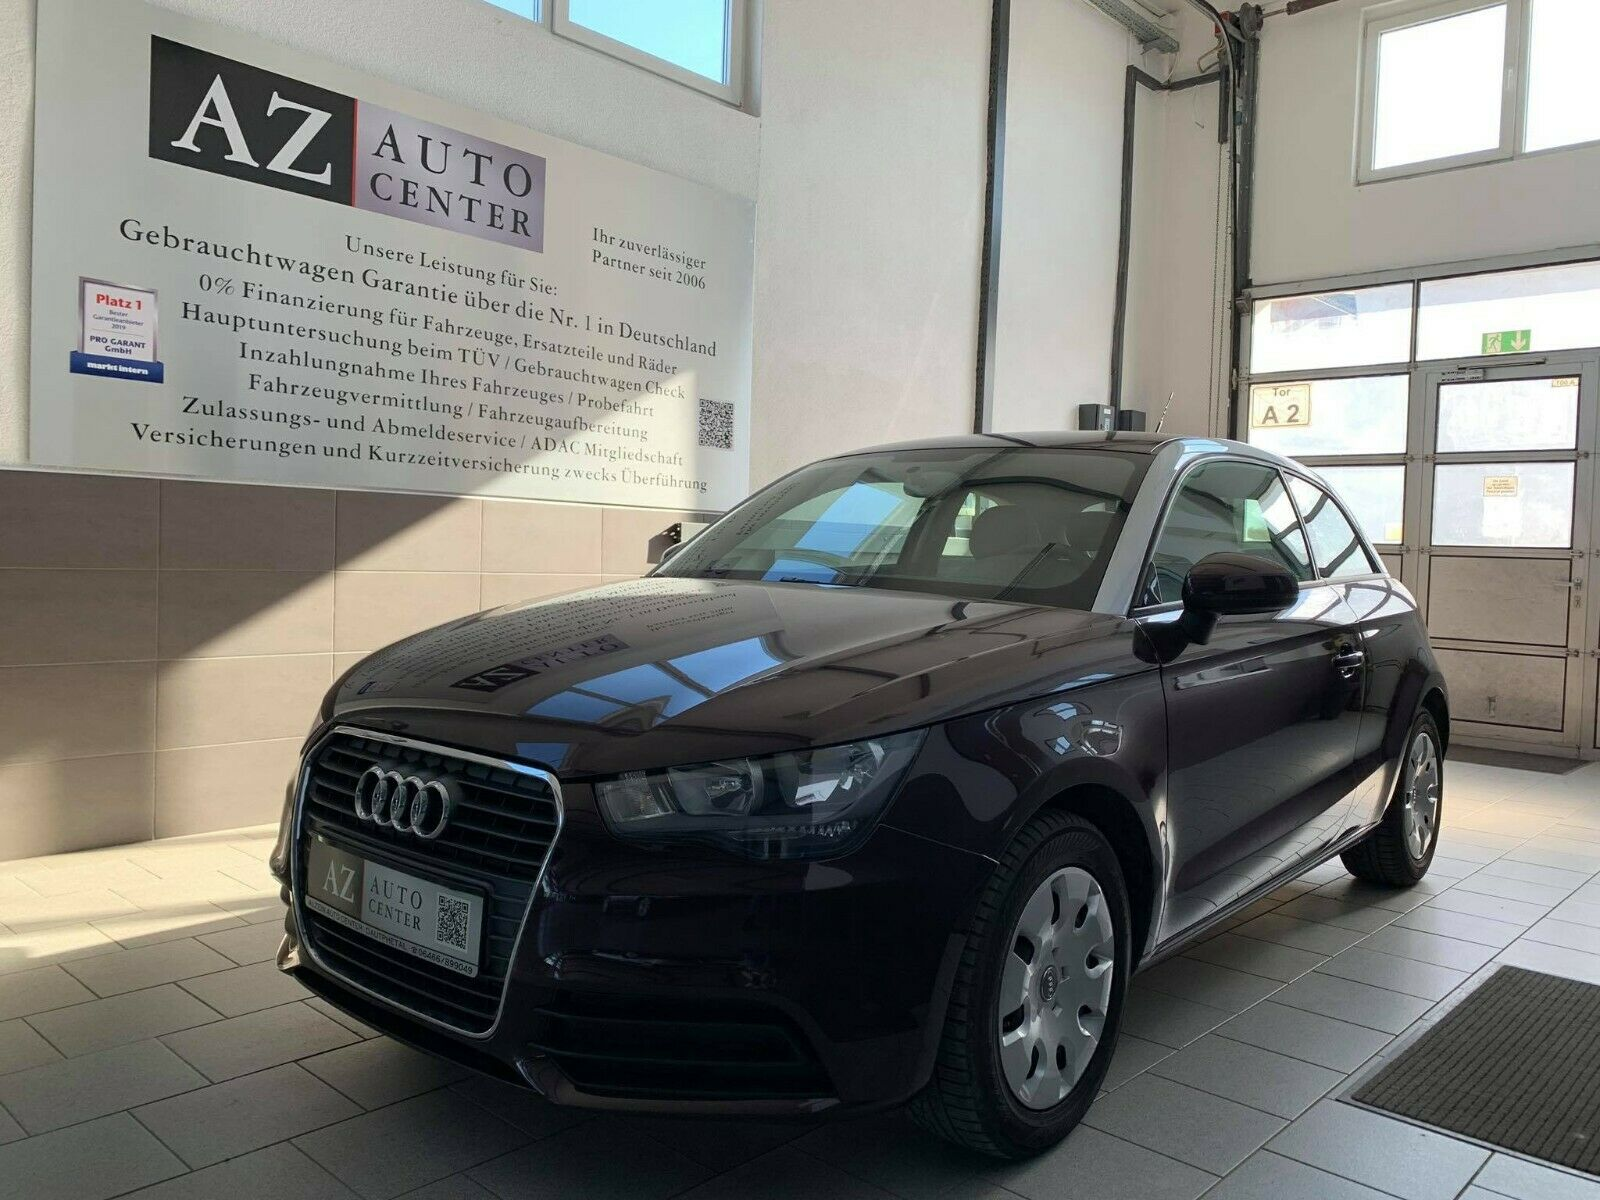 AUDI A1 1.6 TDI Attraction/Klima/Sitzheiz./Euro5/19%